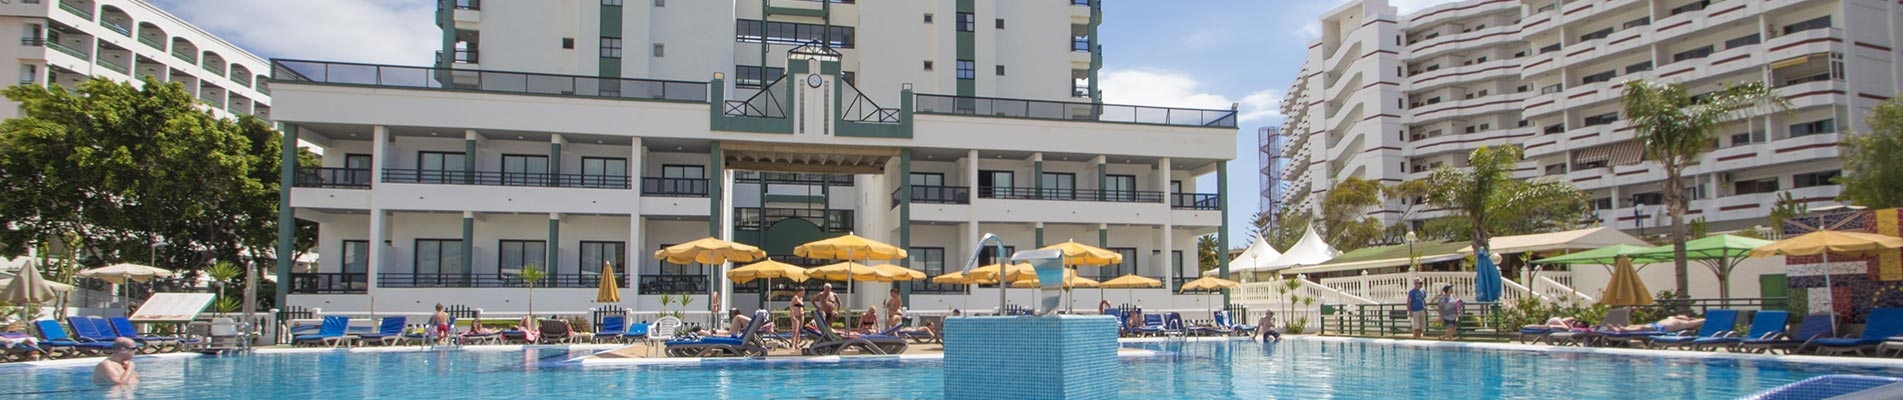 hotel green field playa del ingles